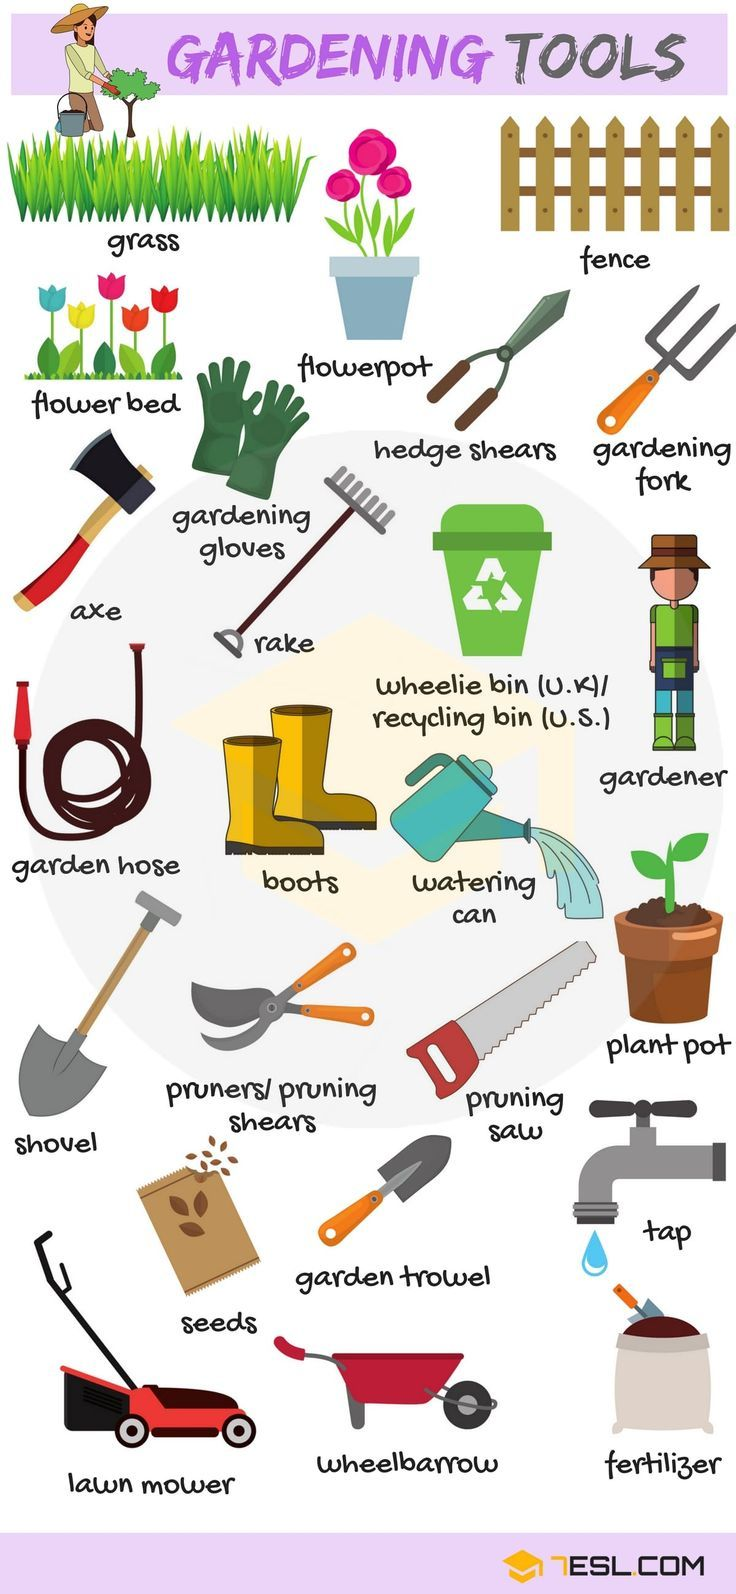 Gardening Tools Names List With Useful Pictures Englisch Lernen Englisch Lernen